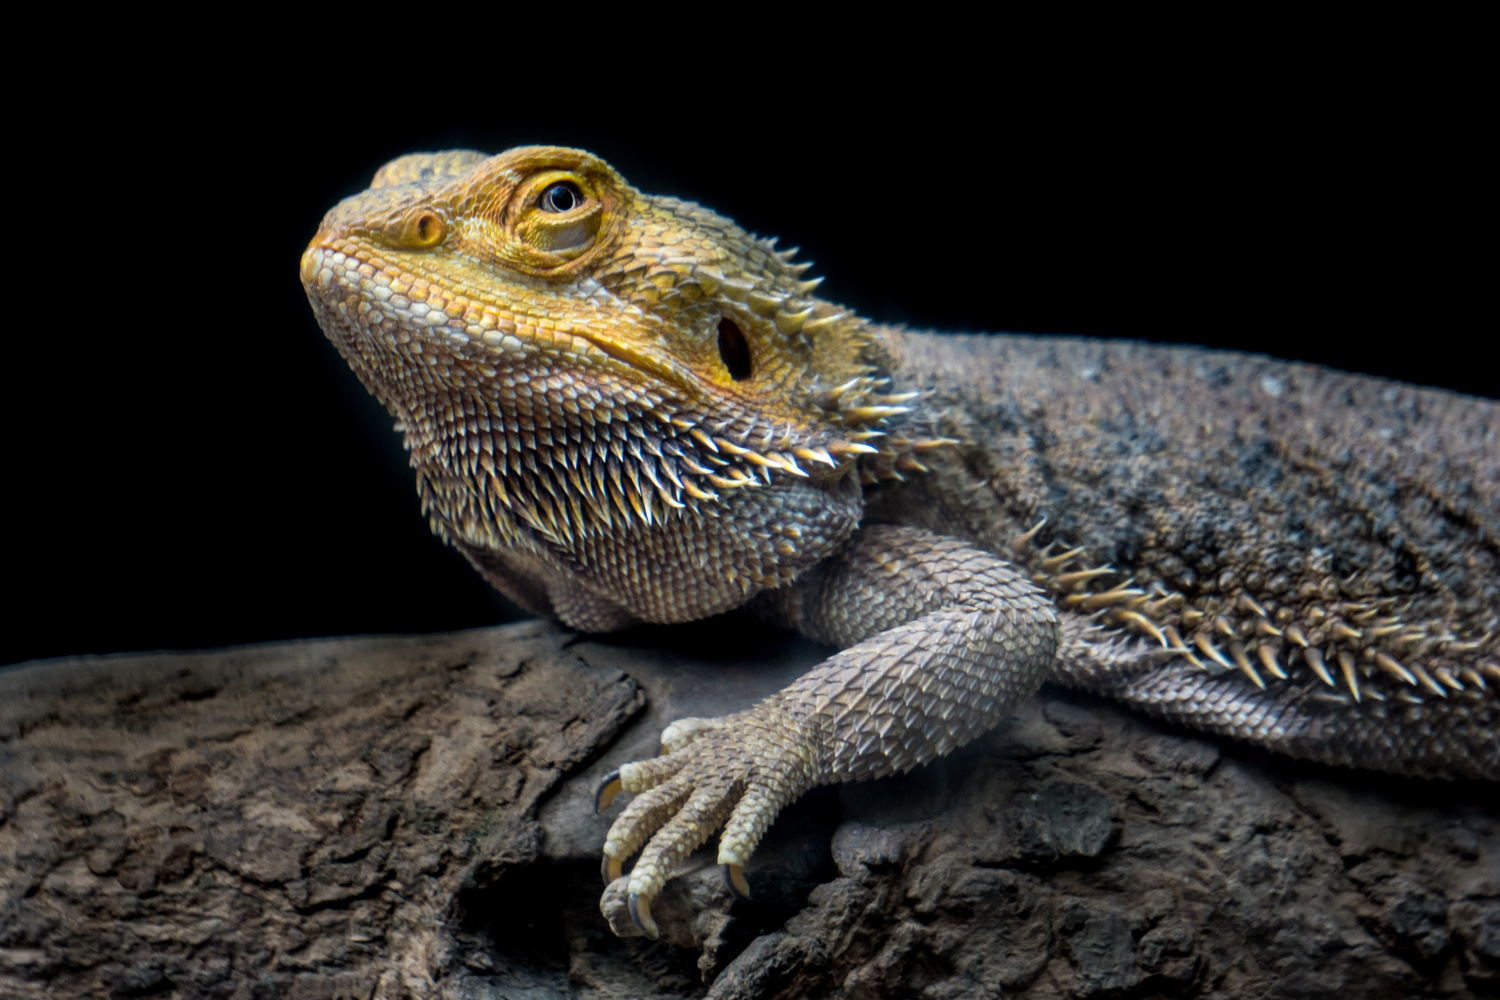 Bearded dragon by S Lake